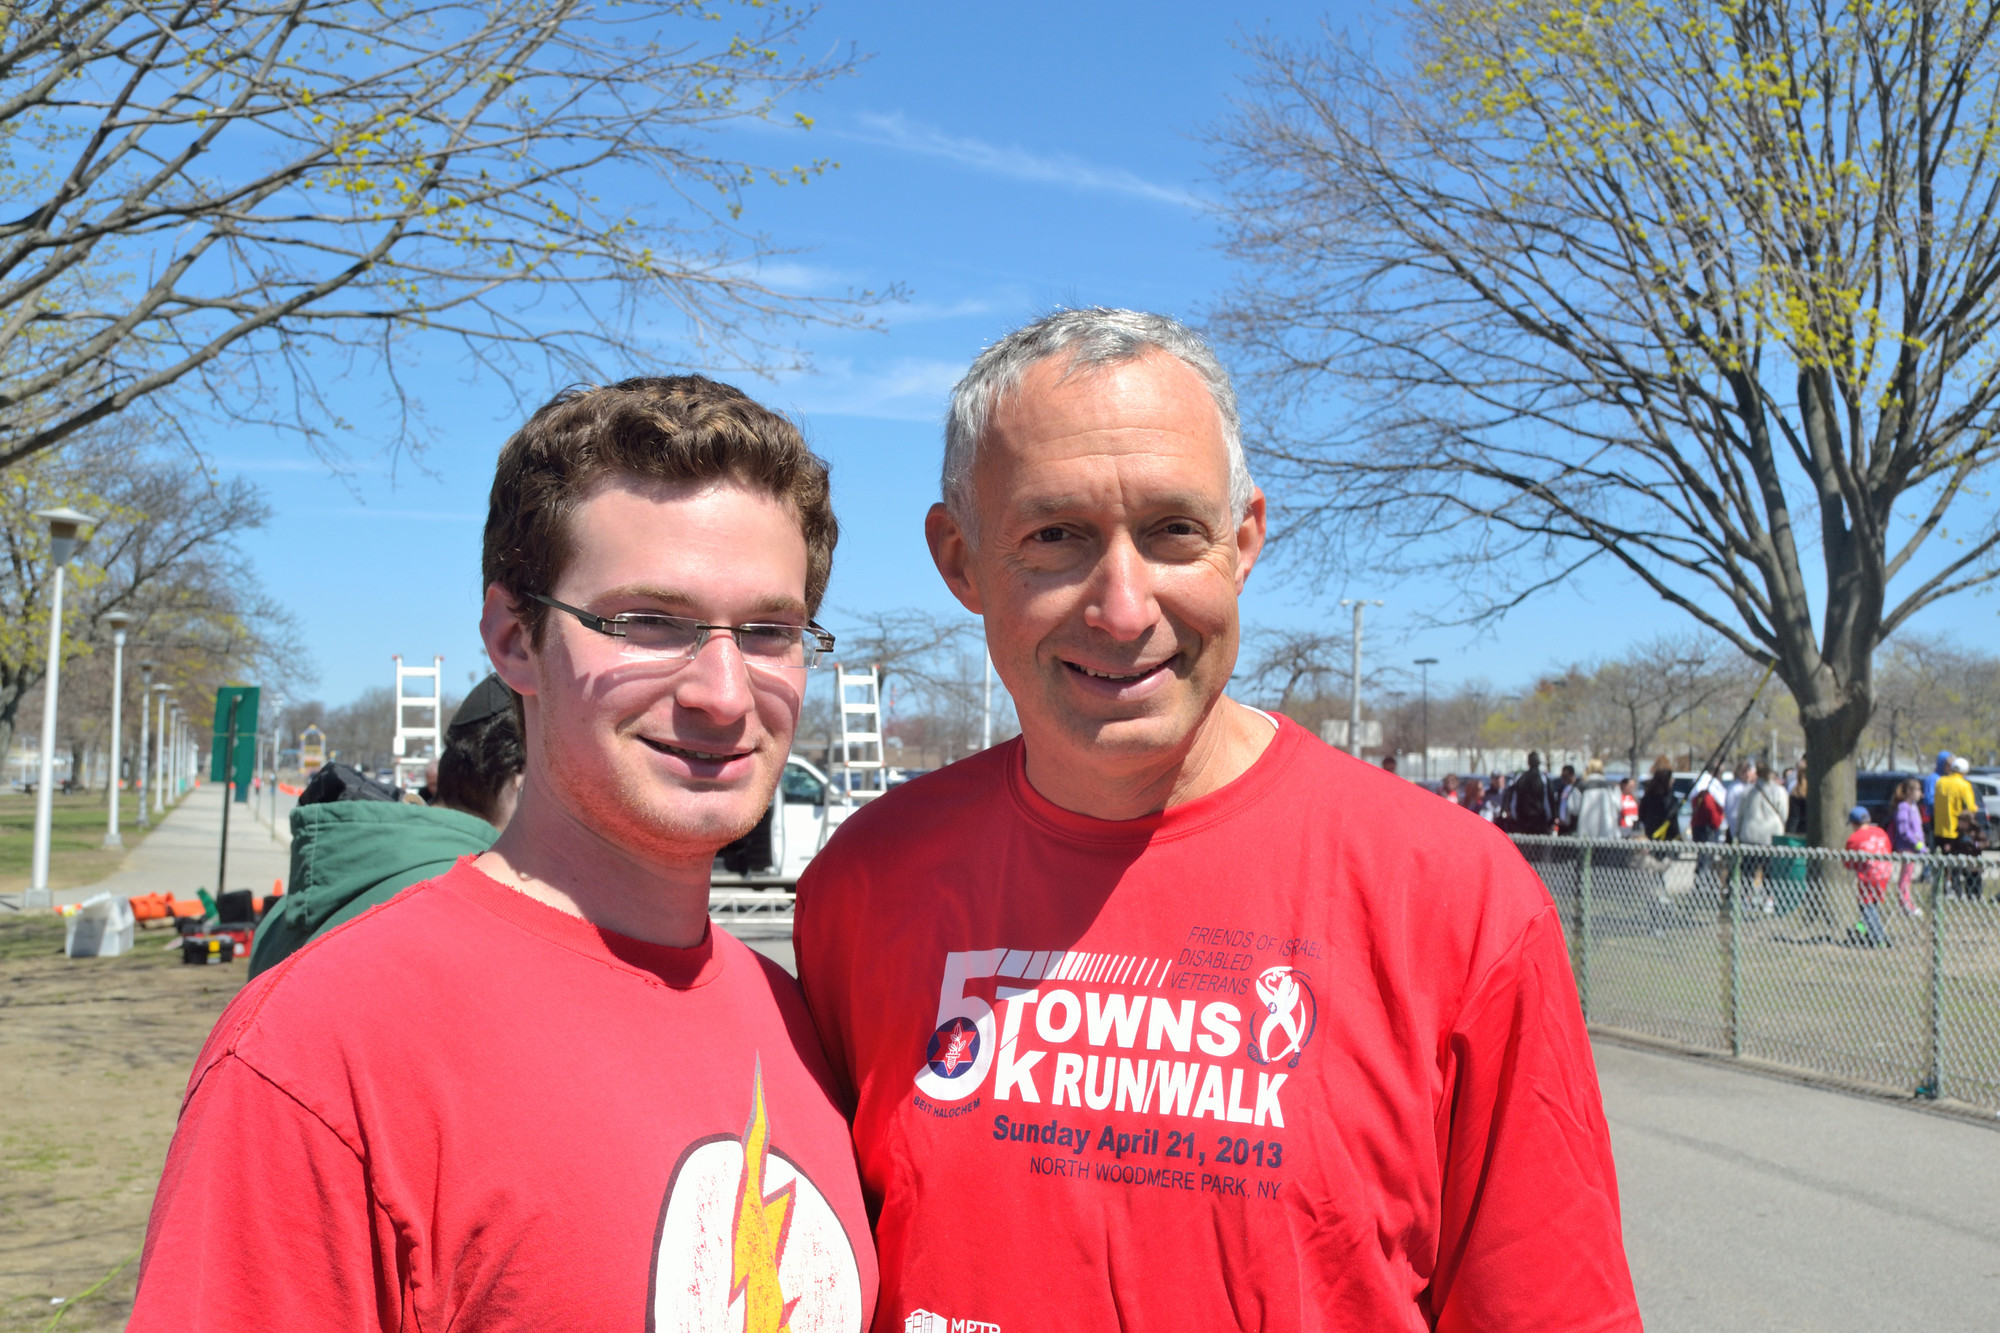 5K Run/Walk organizer Isaac Seinuk and son, Jared.